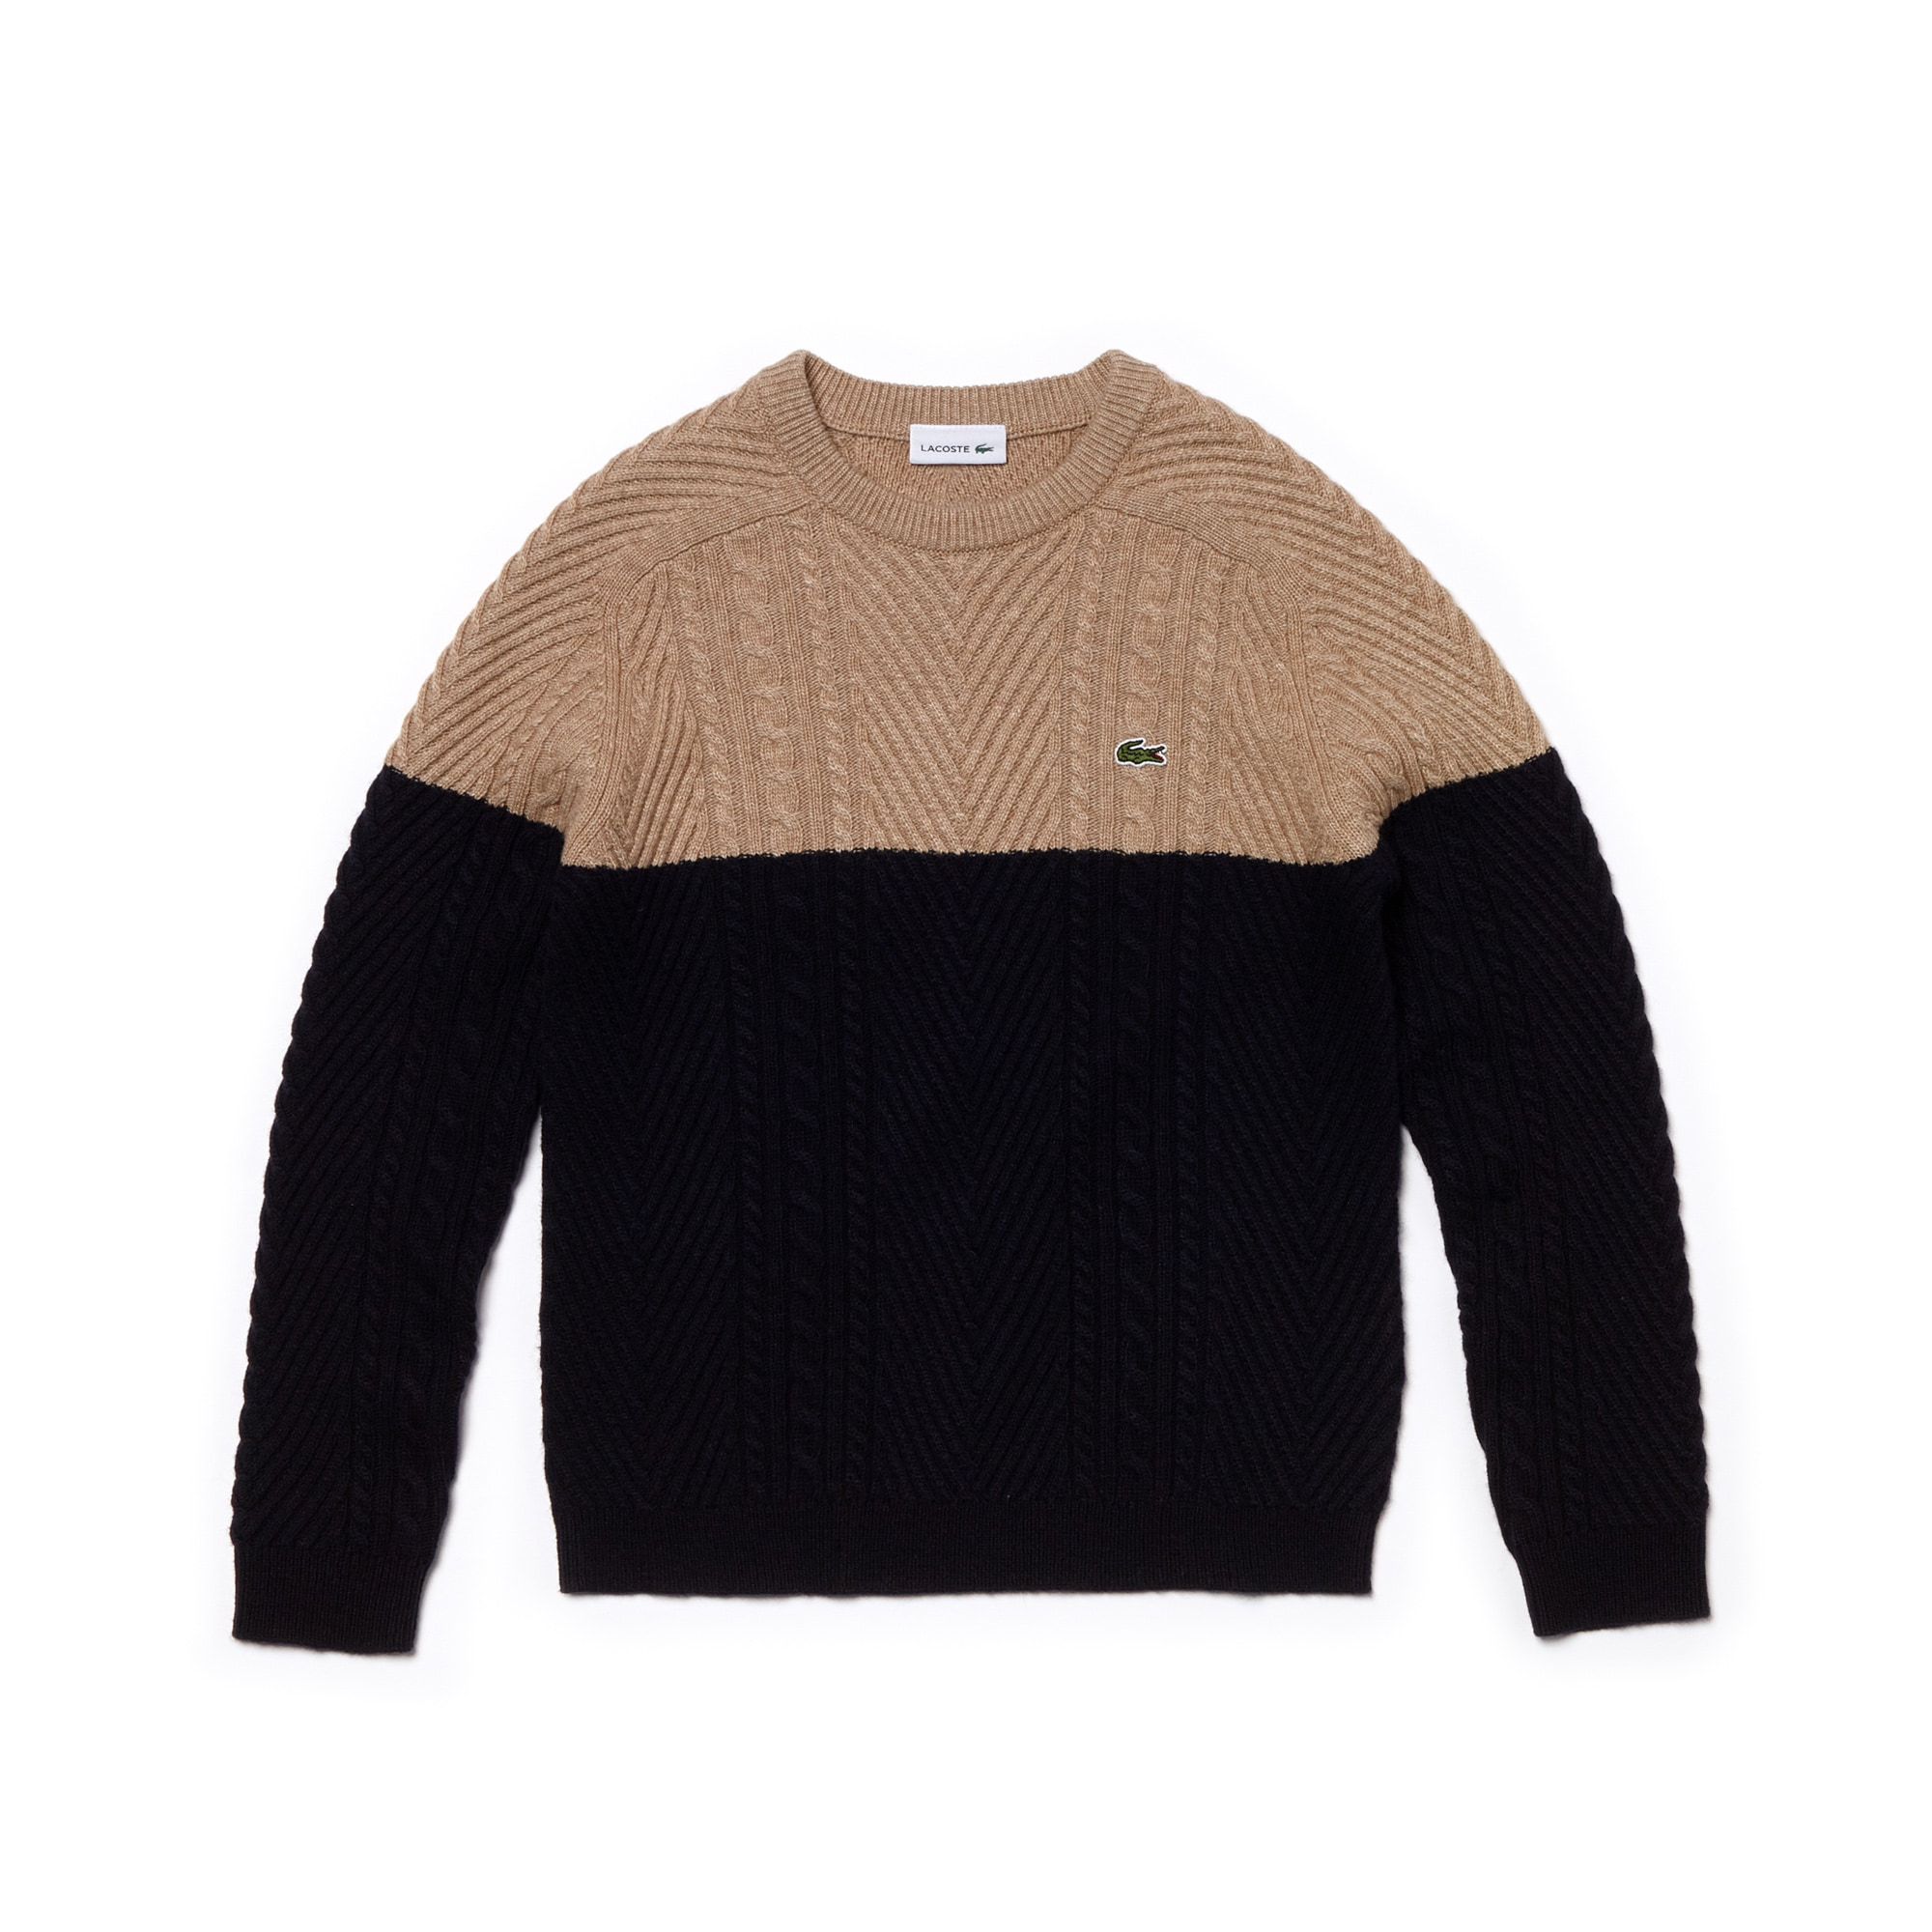 Boys' Crew Neck Cable Knit Cotton Blend Sweater